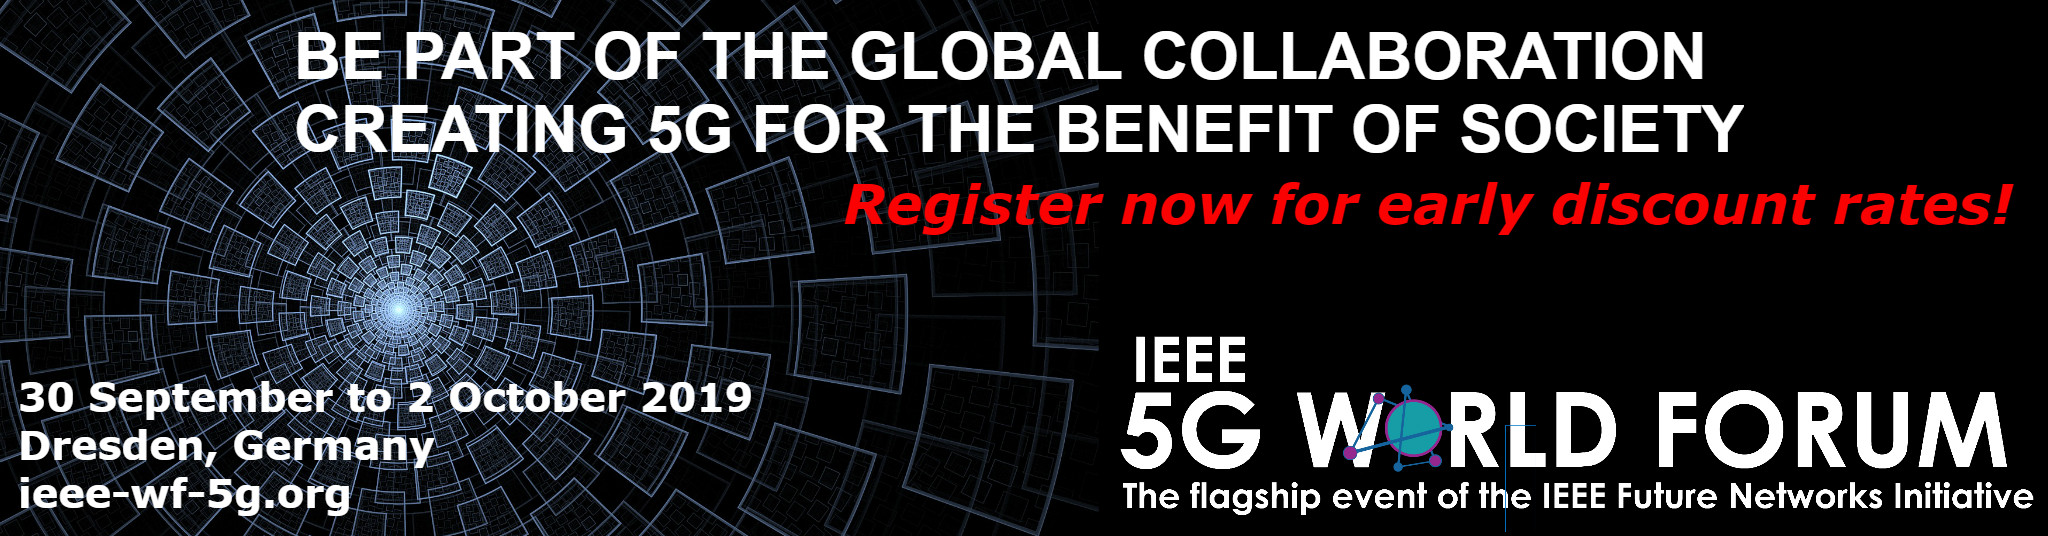 Conferences - IEEE Future Networks